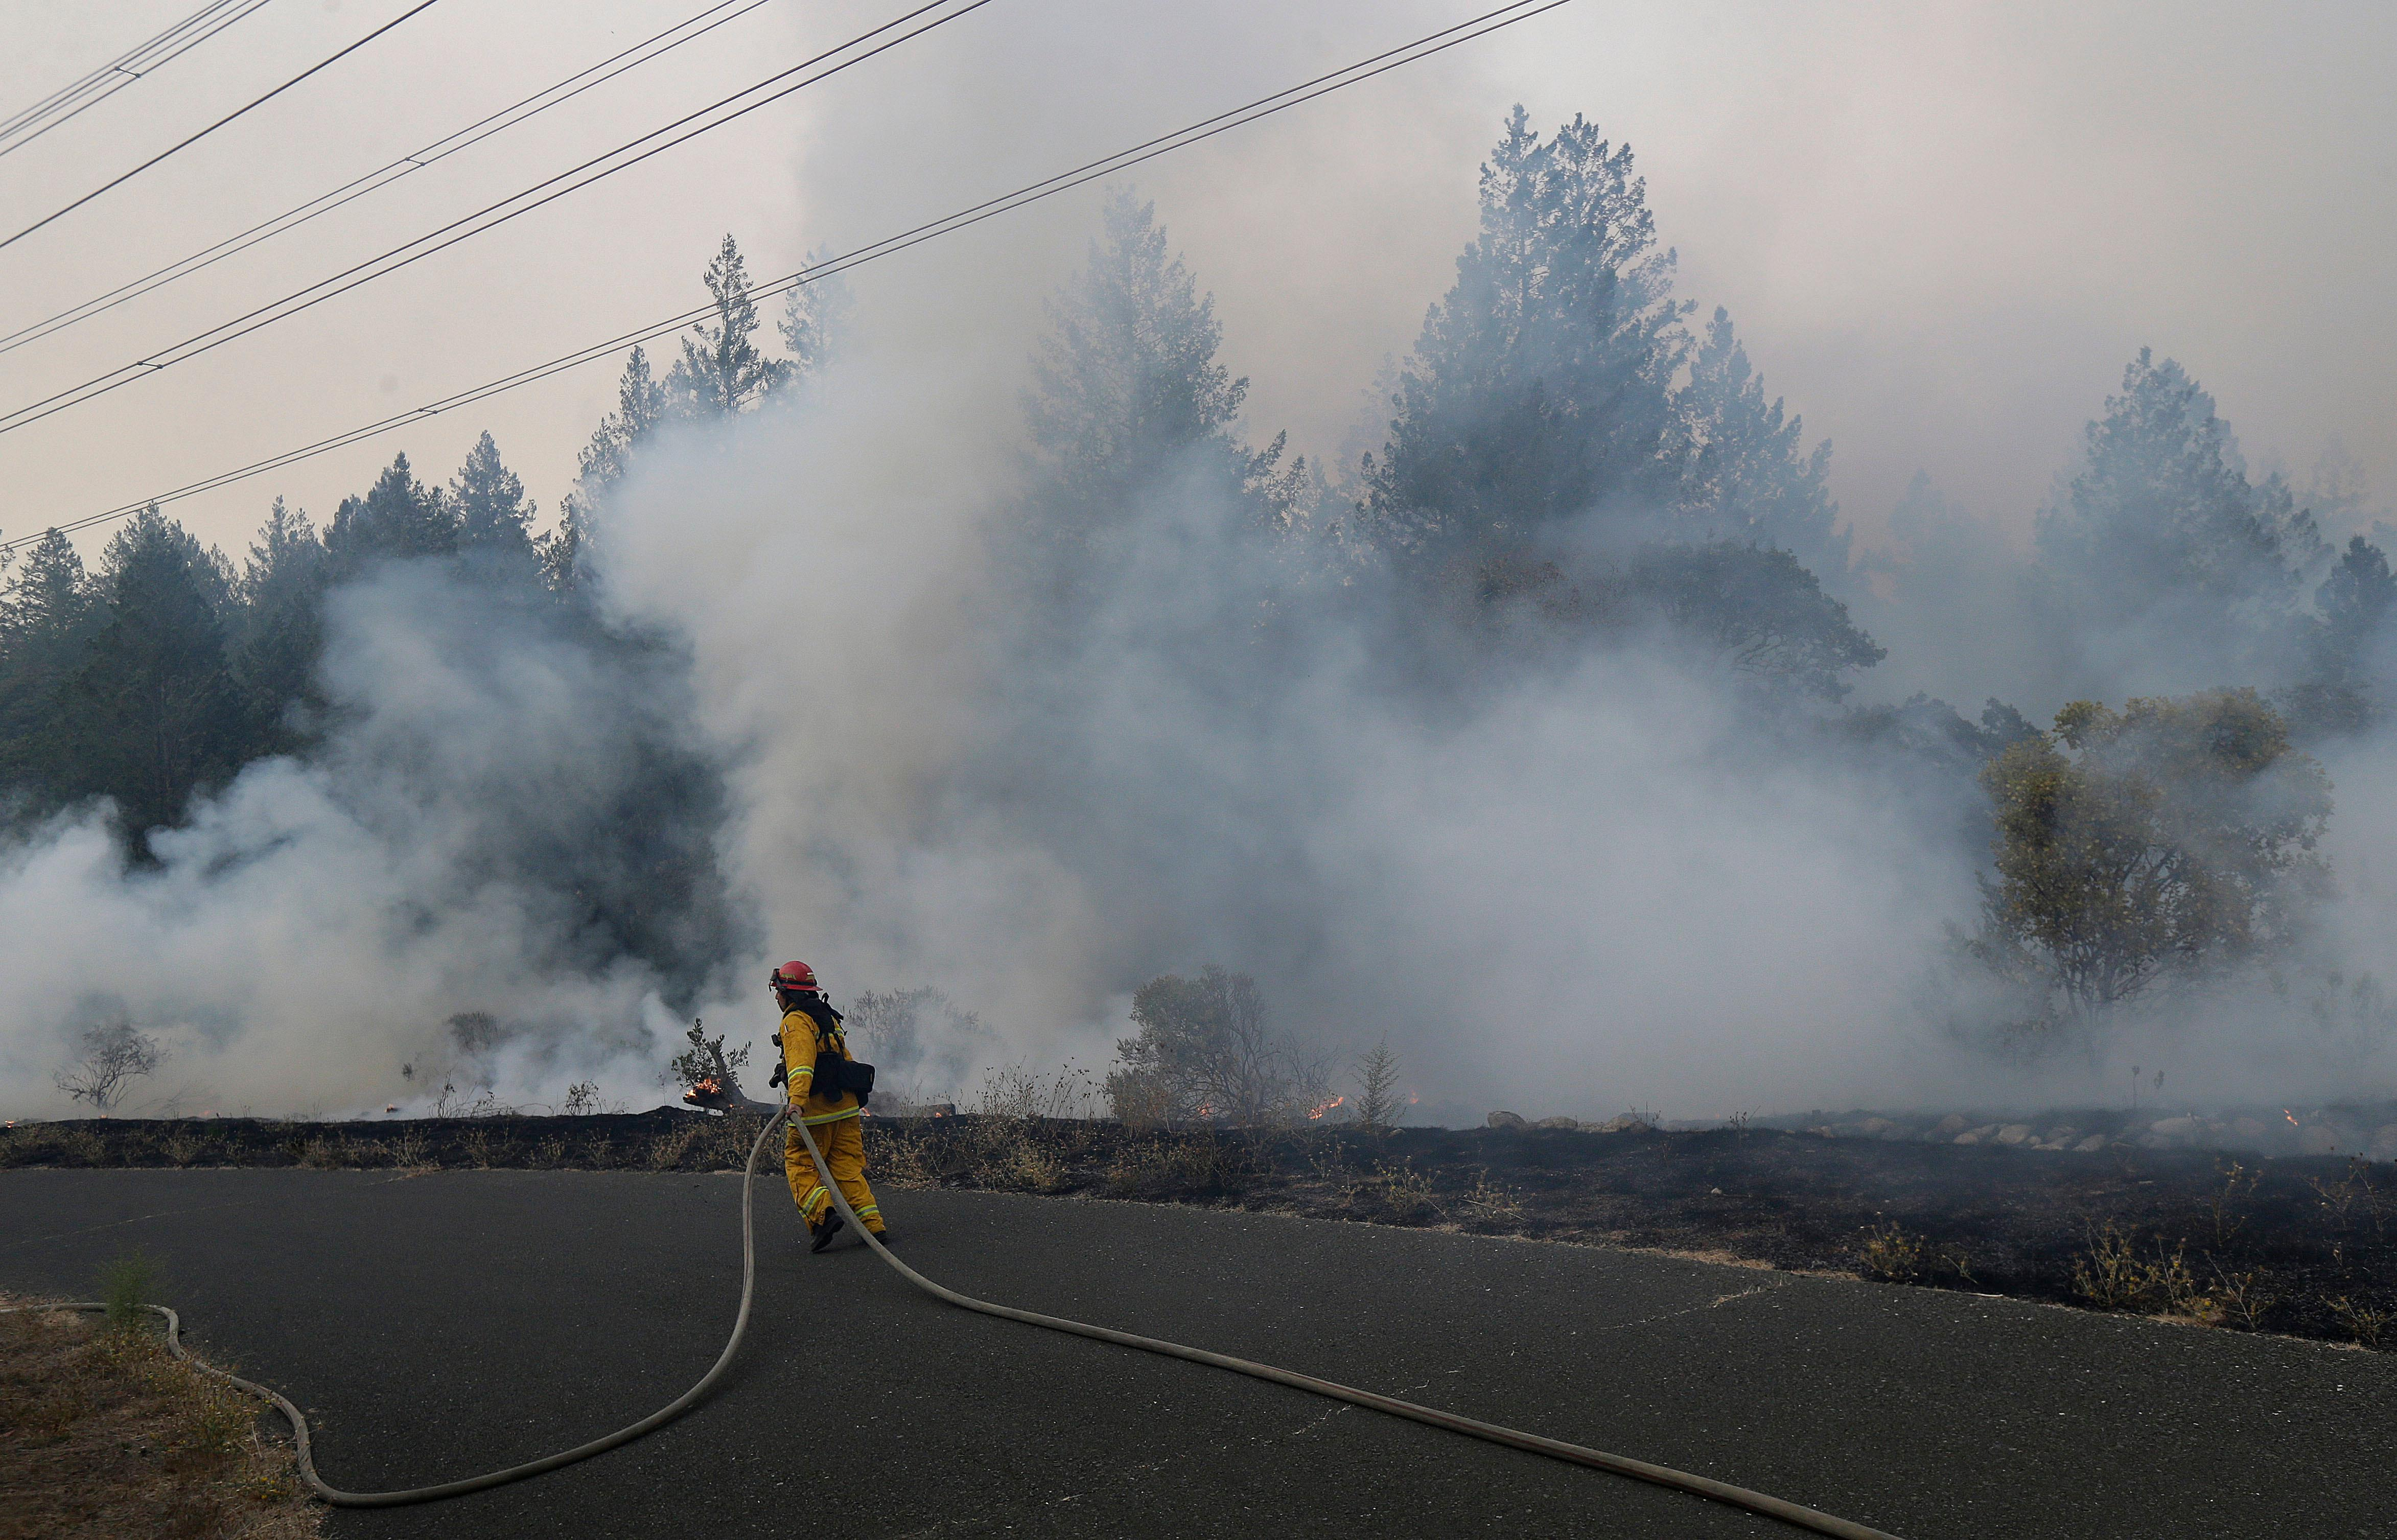 Santa Rosa firefighters work on a fire on the side of a road near the Oakmont area in Santa Rosa, Calif., Tuesday, Oct. 10, 2017. (AP Photo/Jeff Chiu)